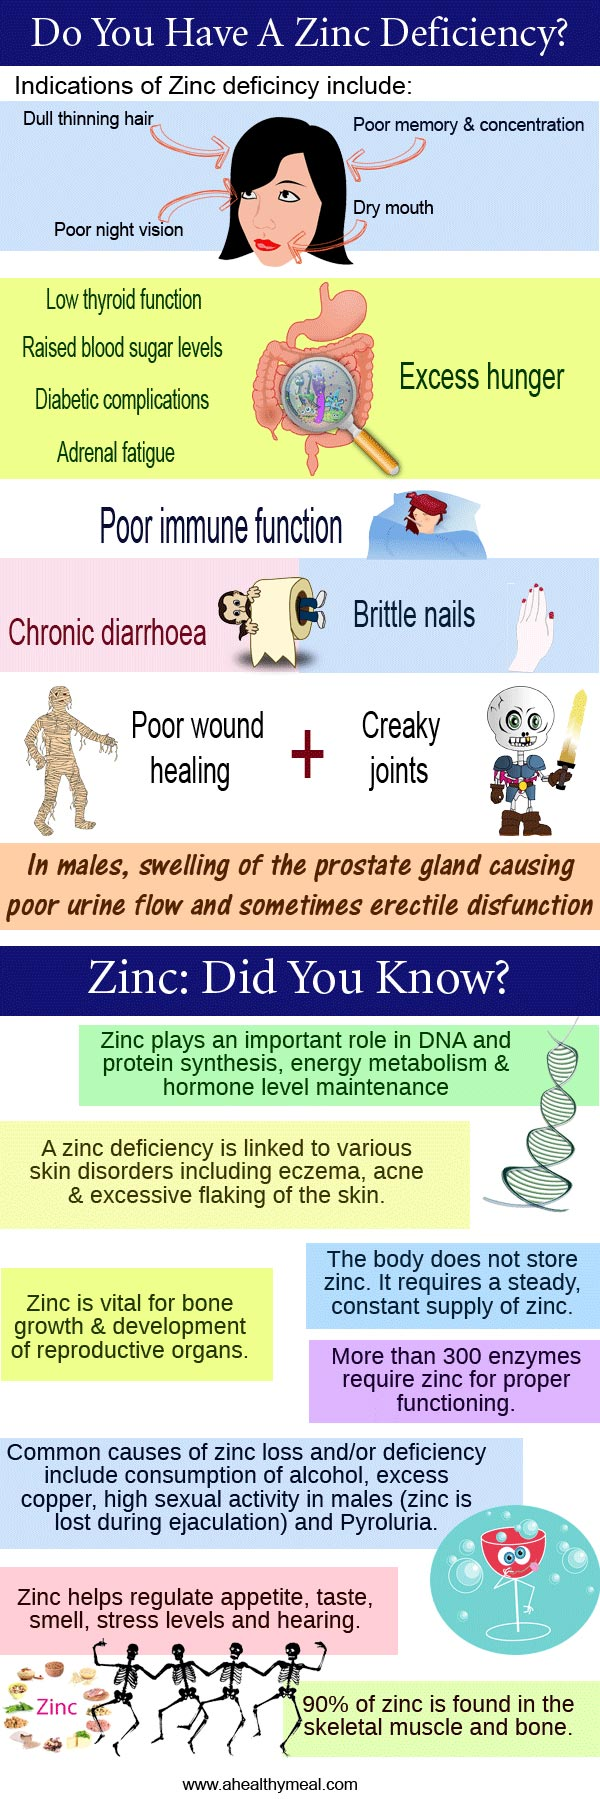 Zinc Deficiency Symptoms: An Infographic - A Healthy Meal